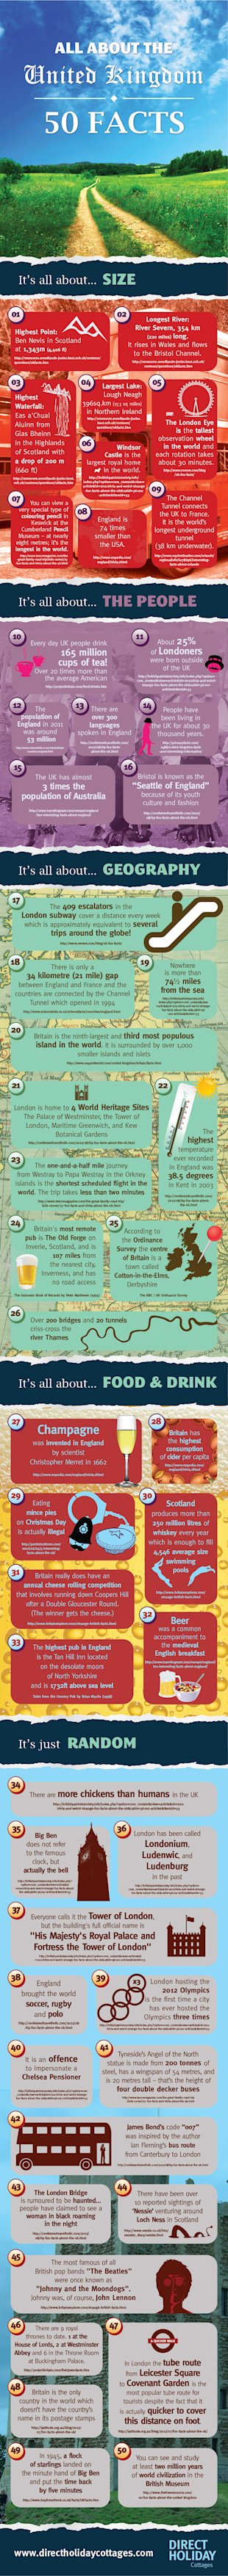 All About The United Kingdom [Infographic] image all about the united kingdom 50 facts4